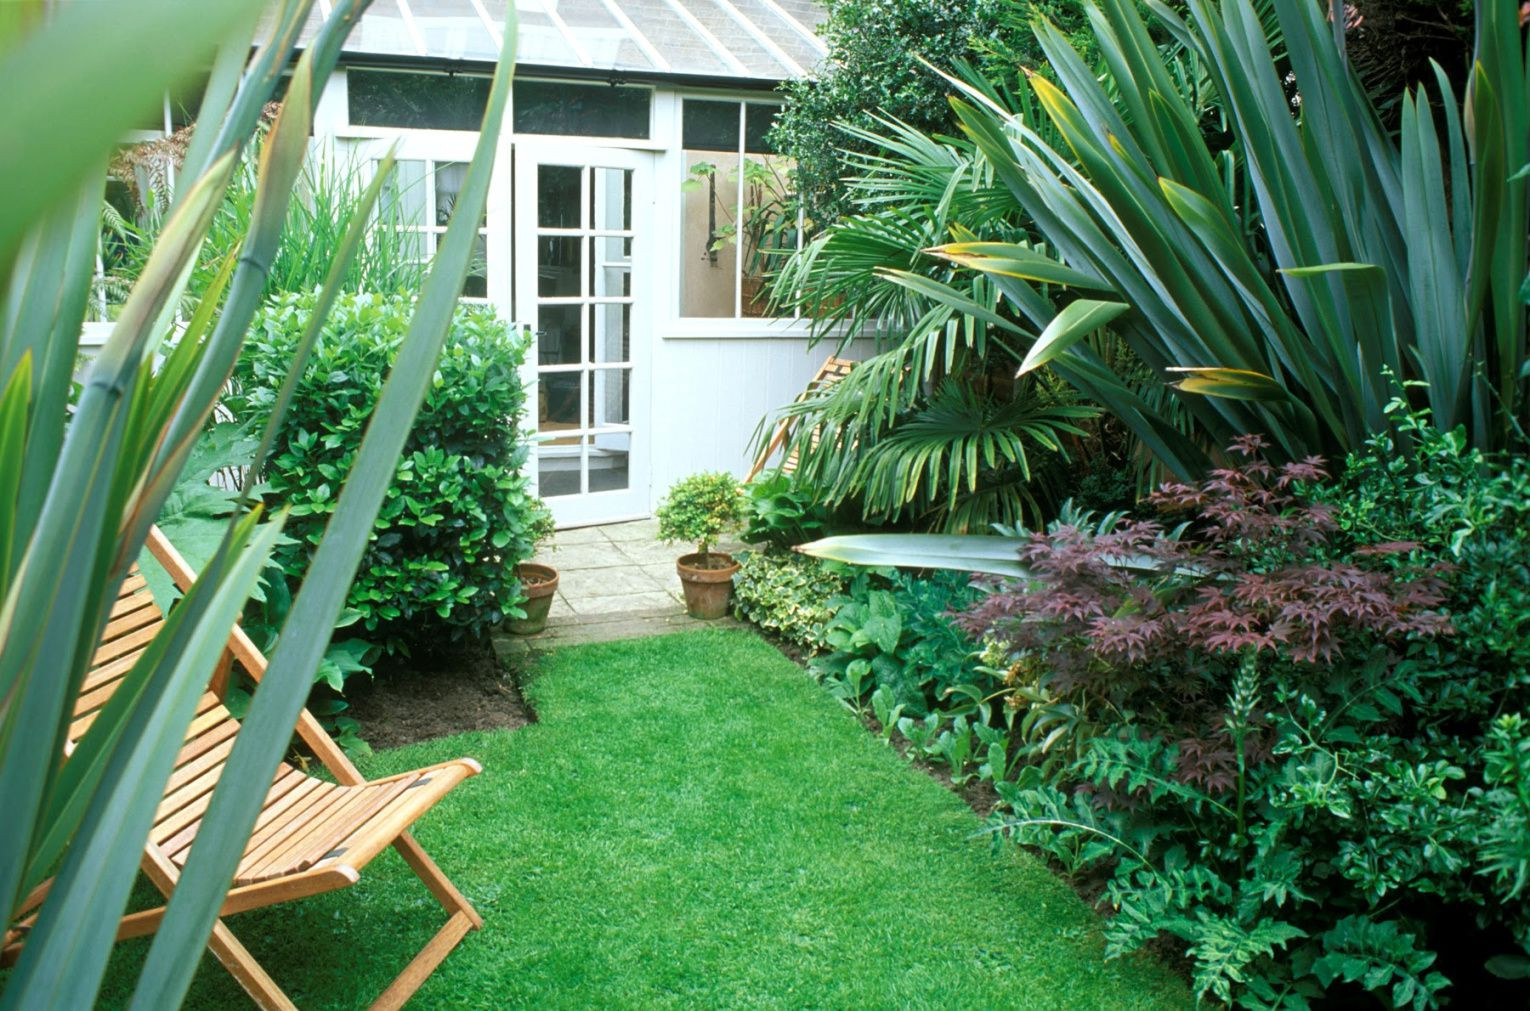 Landscape Designs For Small Yards  23 Landscaping Ideas for Small Backyards